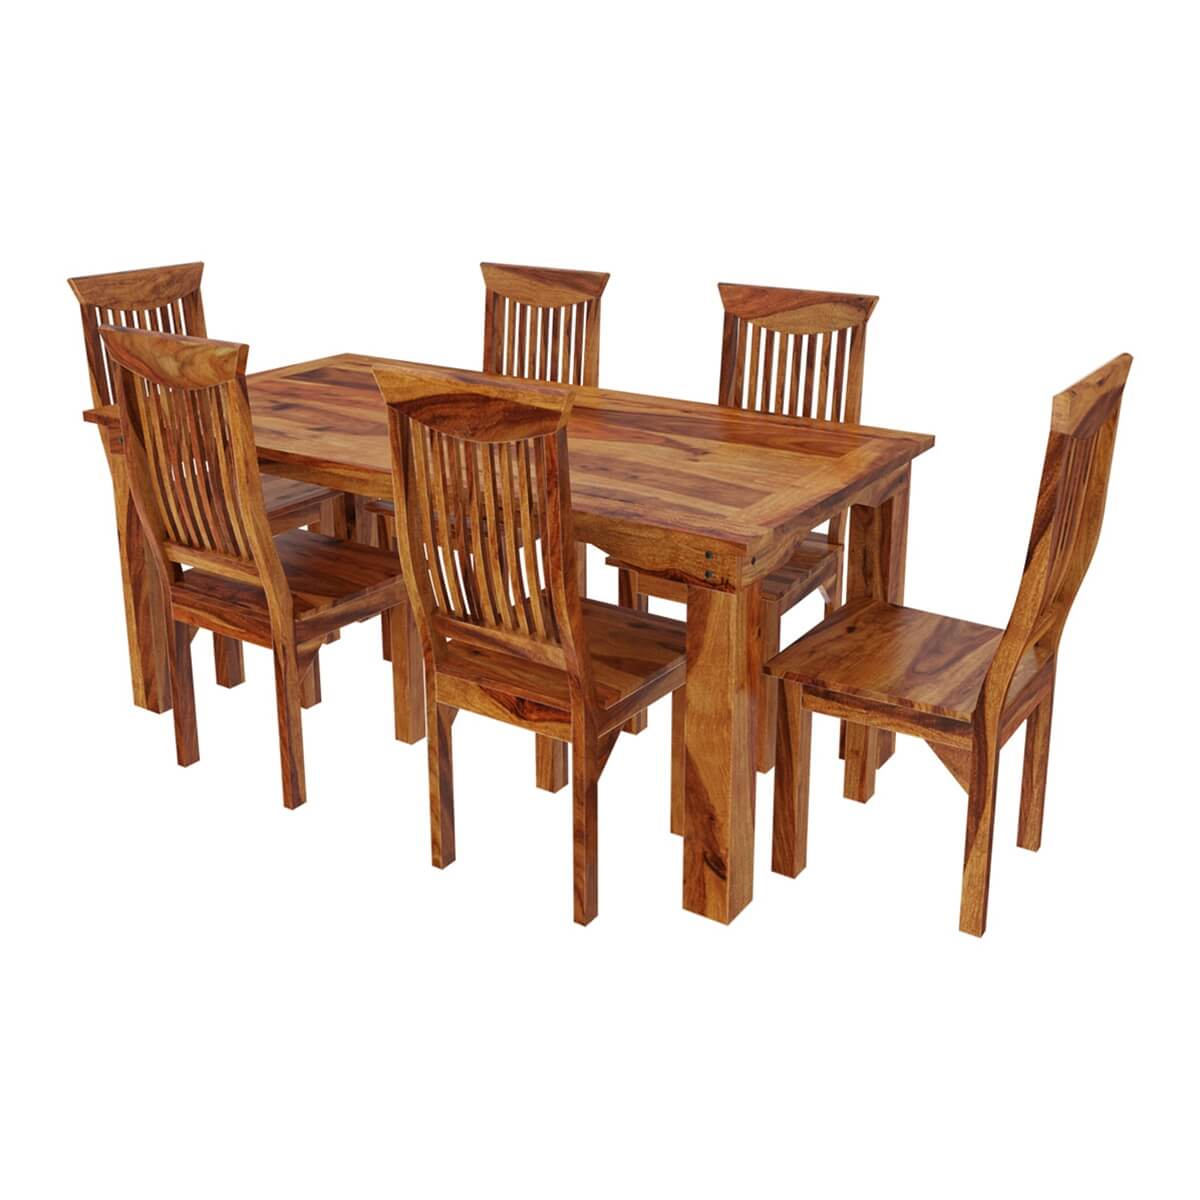 Idaho modern rustic solid wood dining table chair set Rustic wood dining table